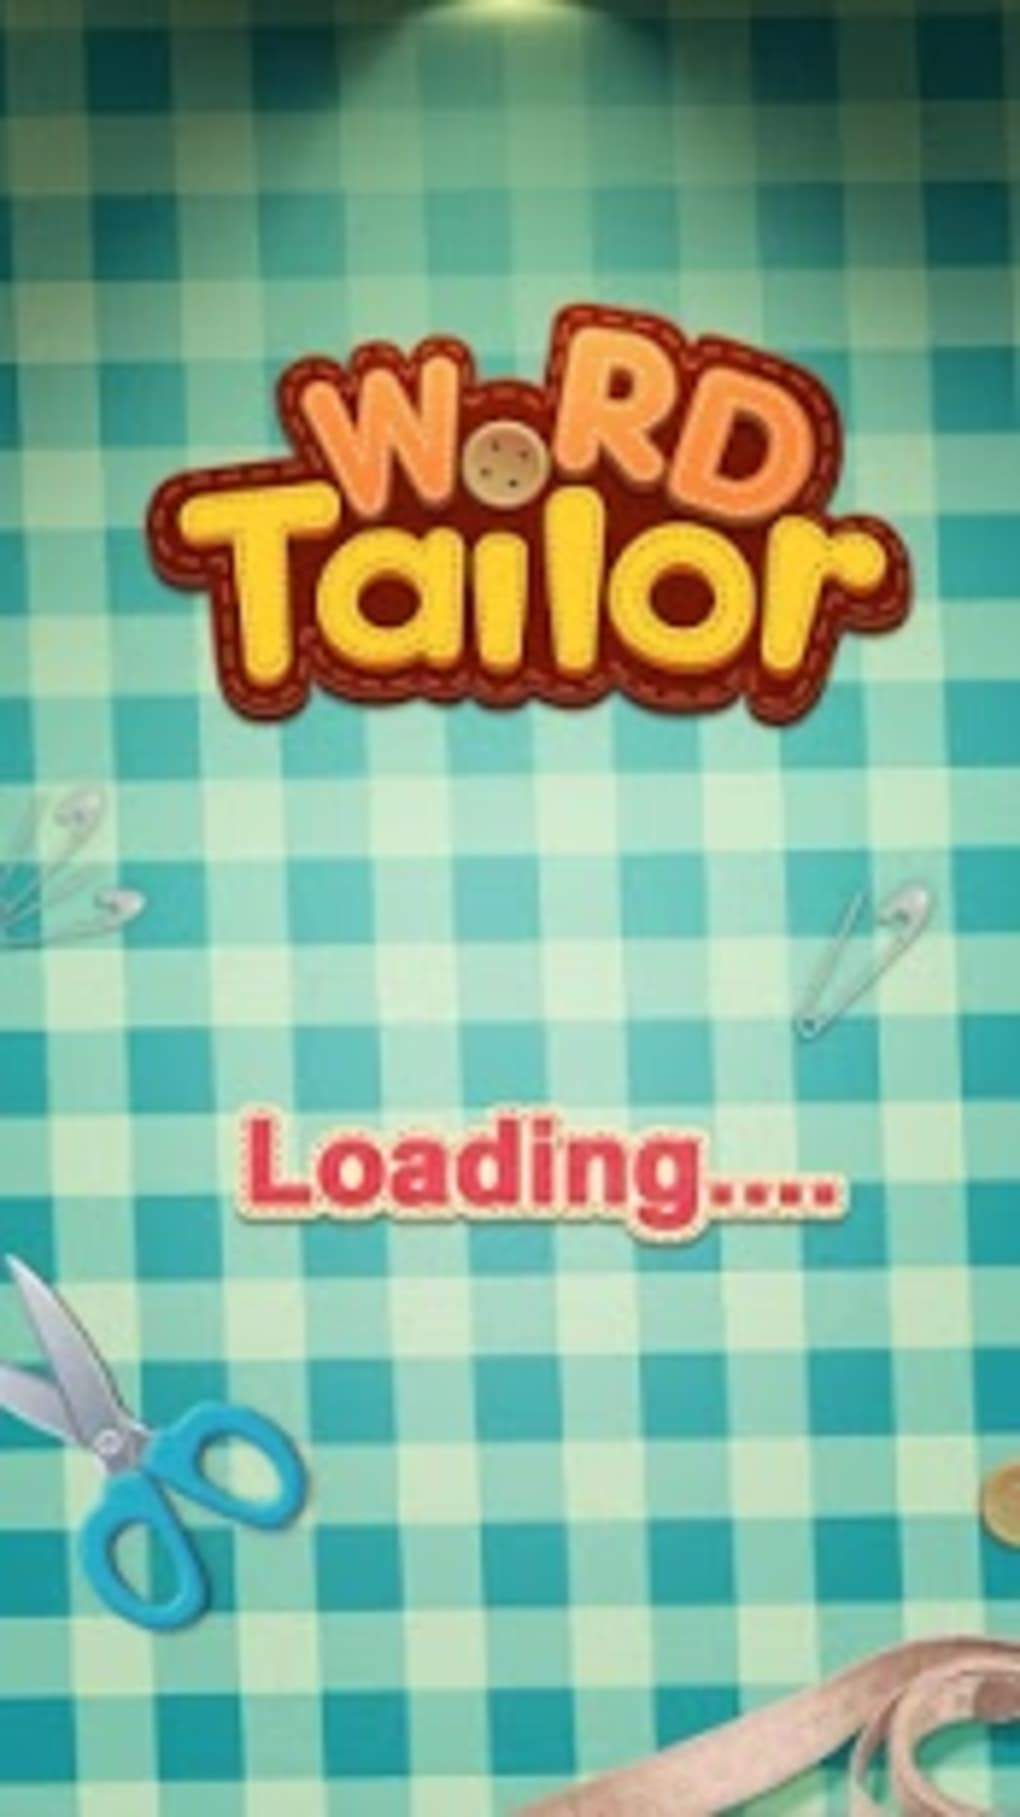 Word Tailor: Words Scramble Puzzle Game for Android - Download